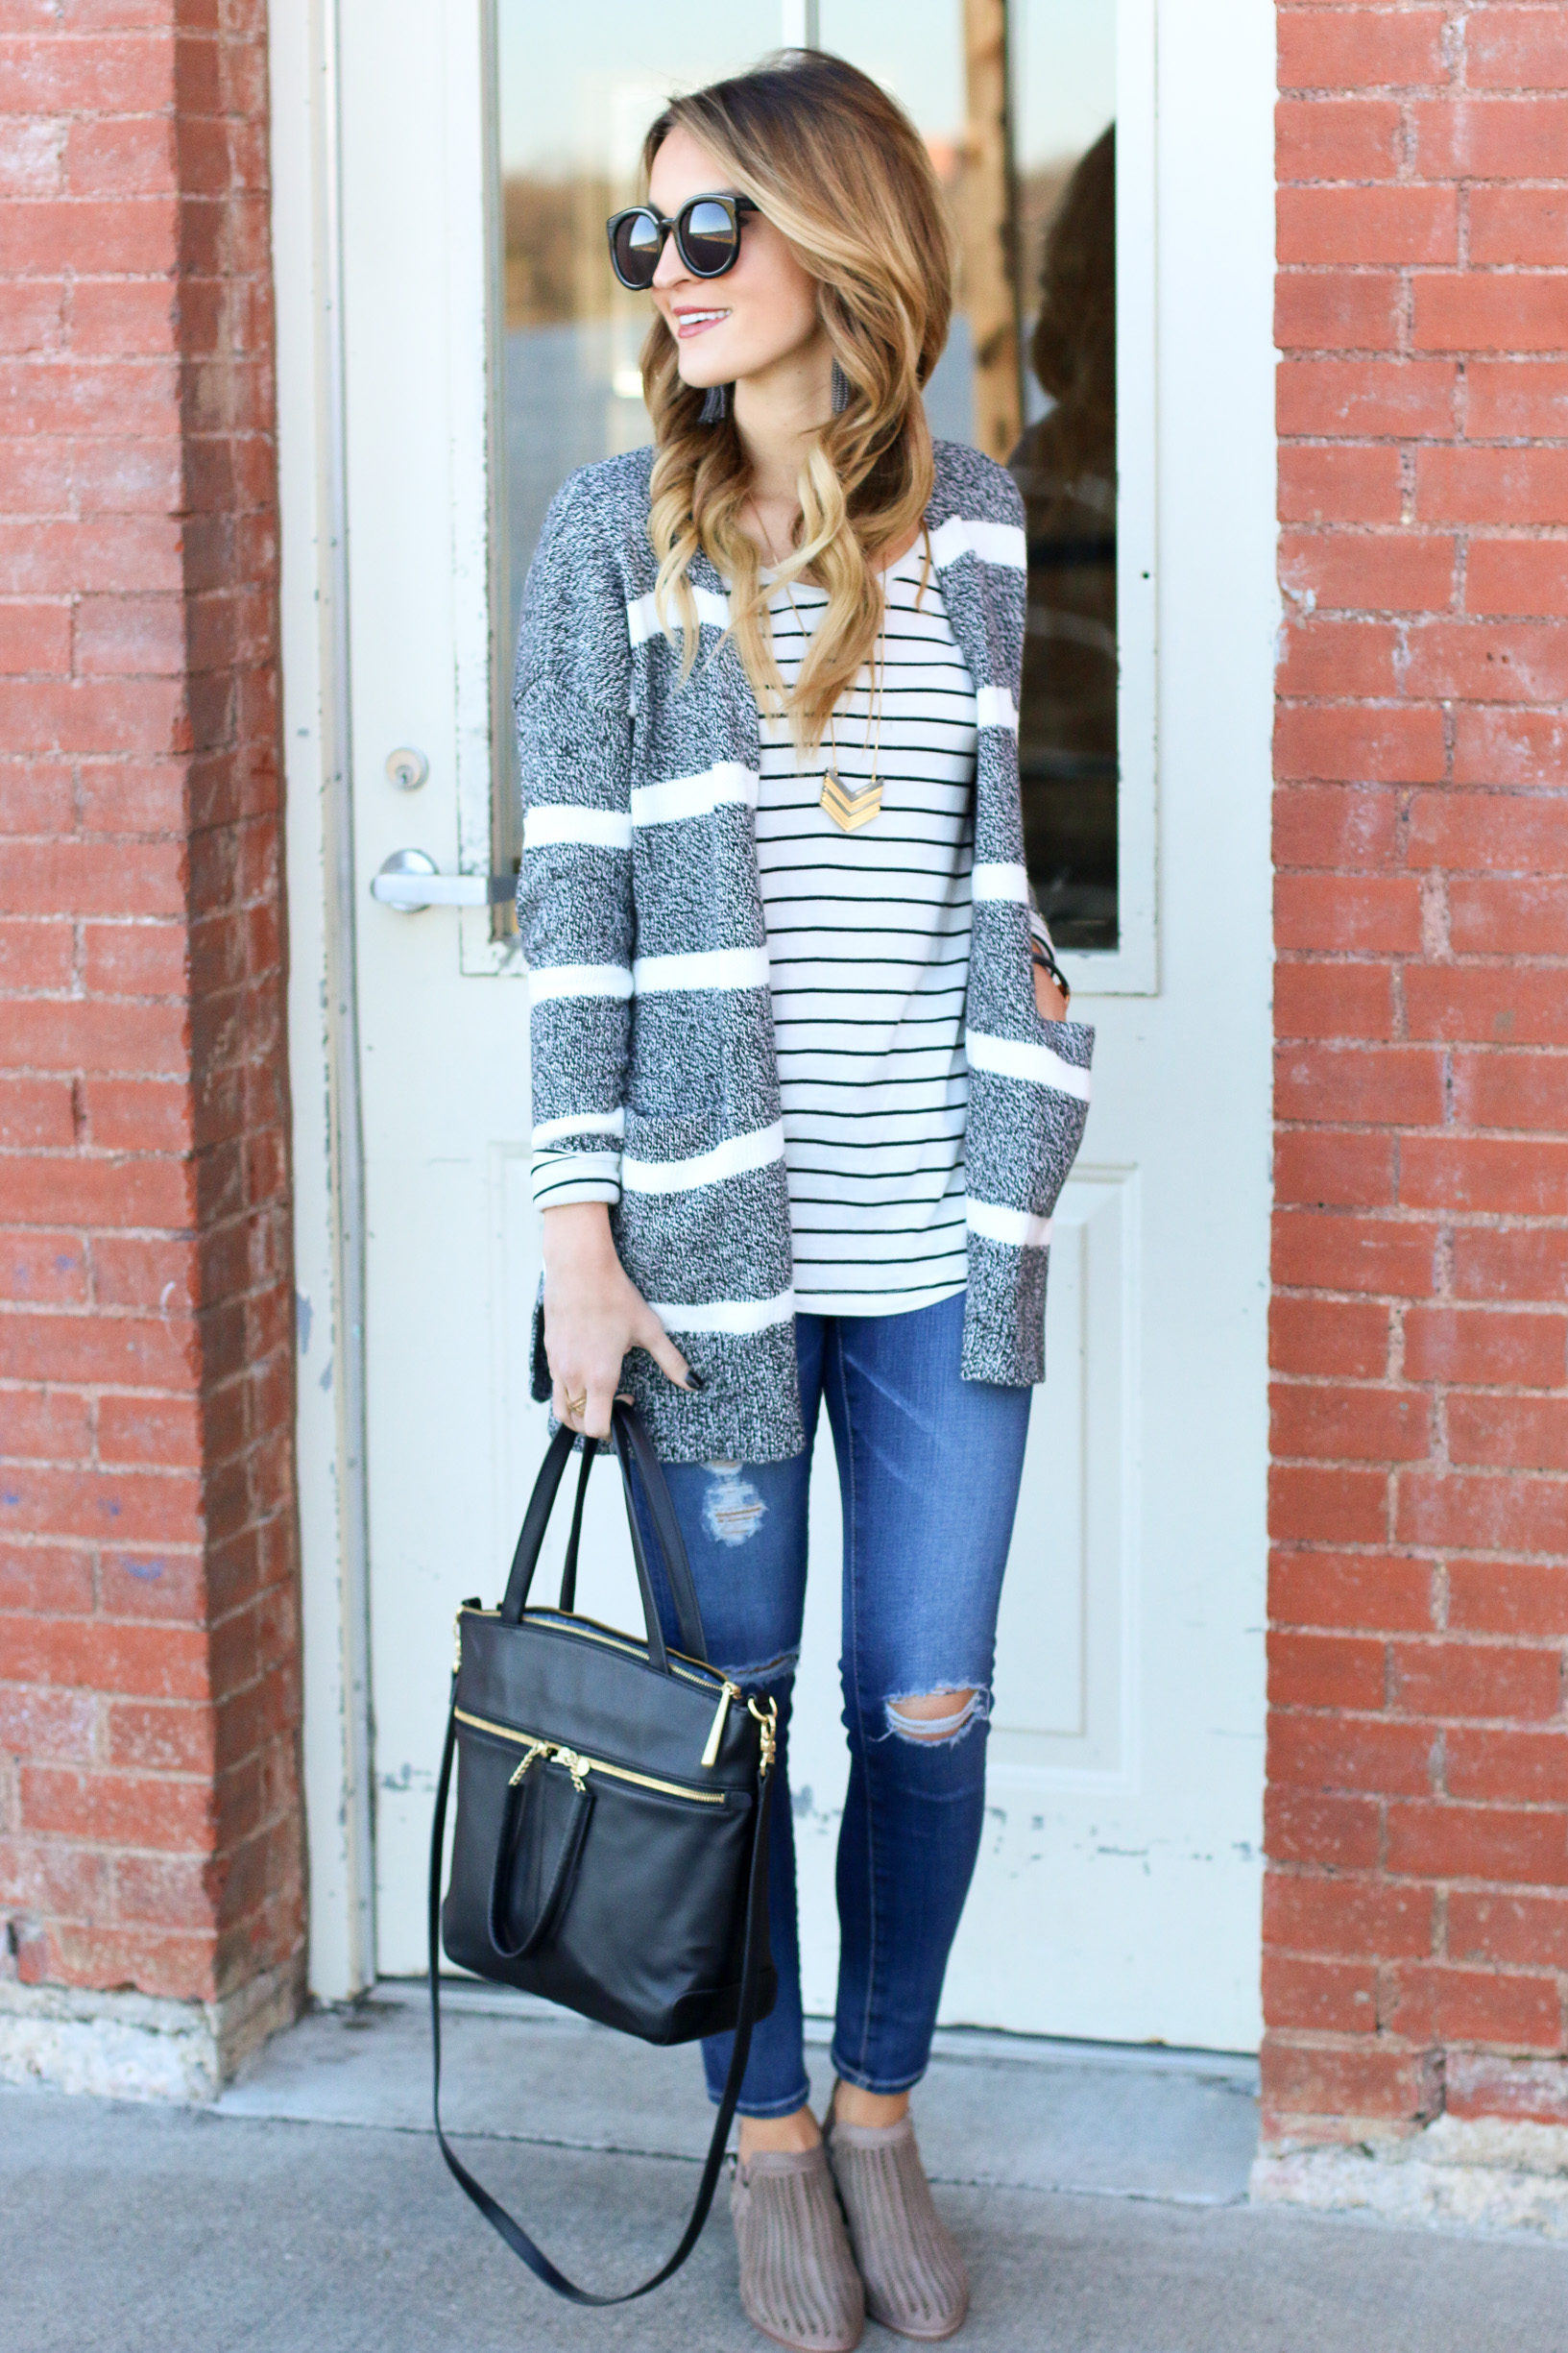 striped cardigan + new favorite booties